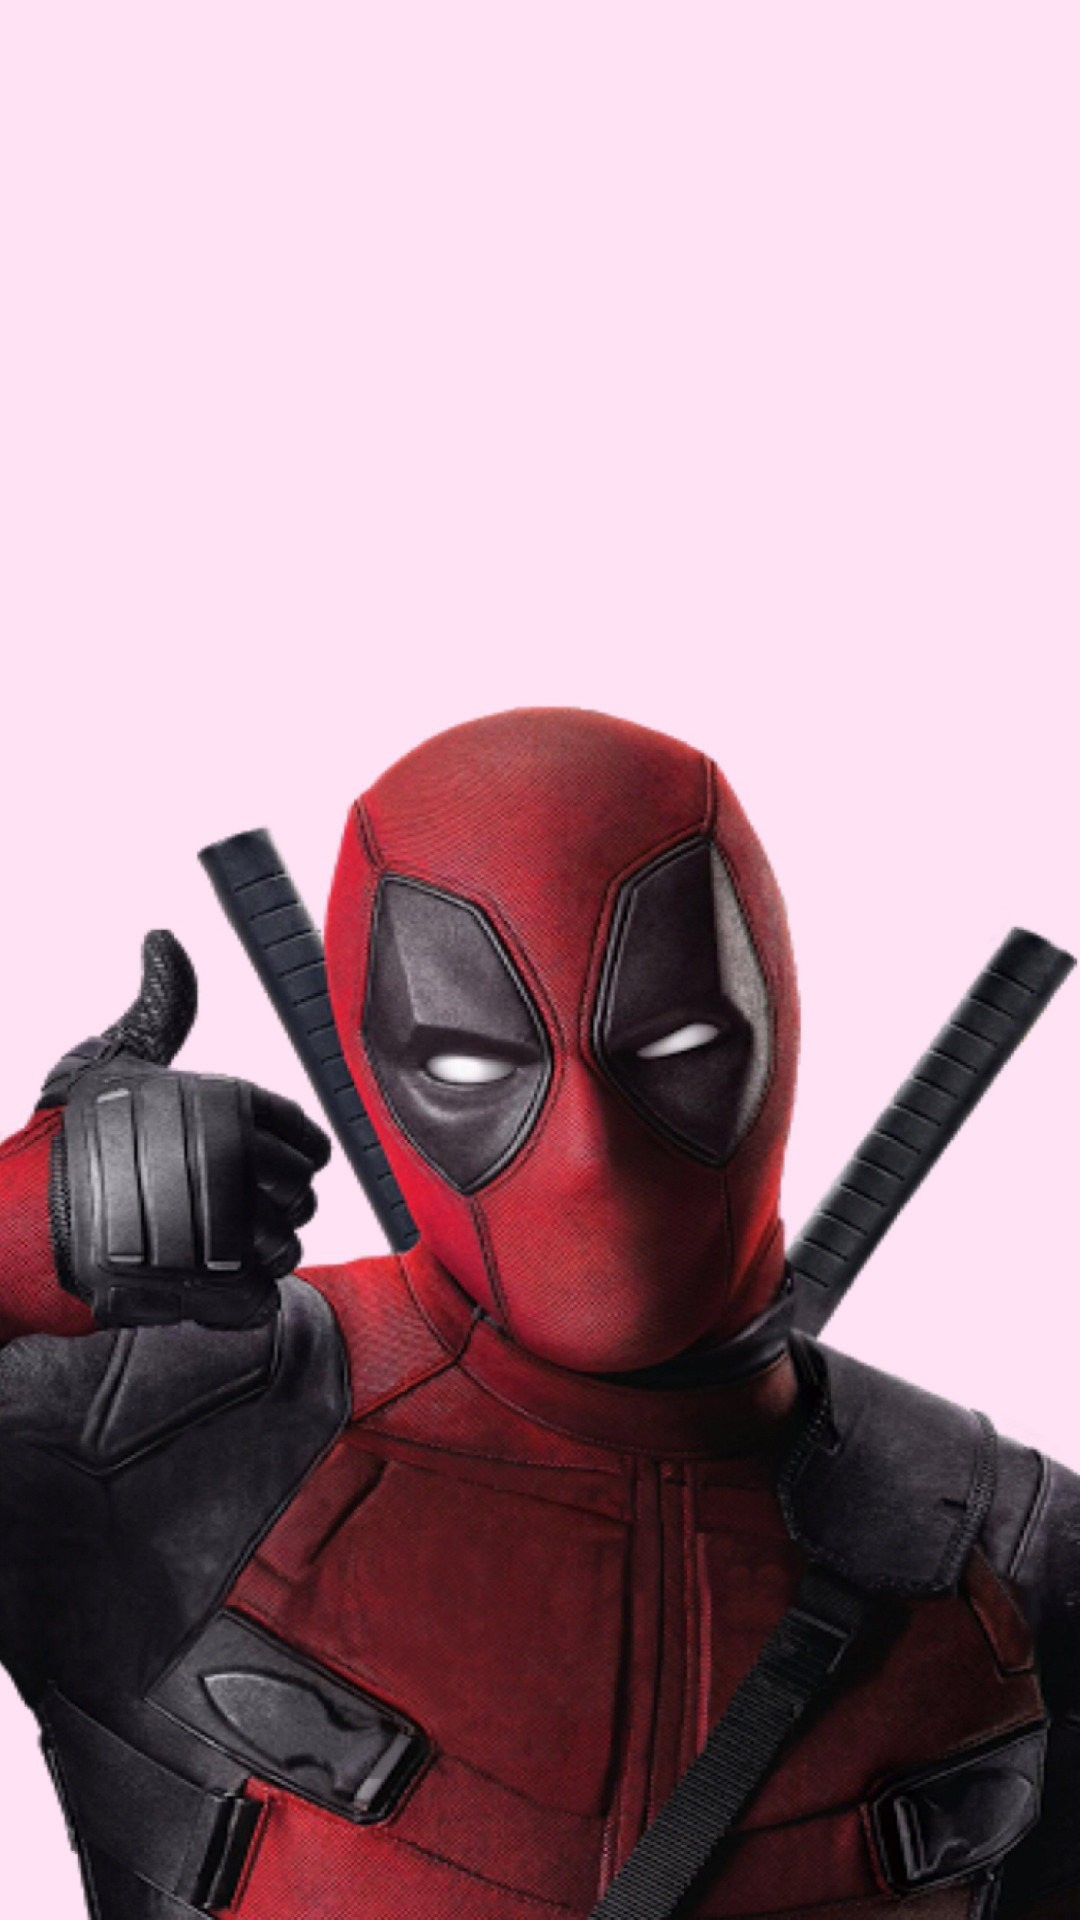 Deadpool HD Wallpapers for iPhone 6 Plus | Wallpapers.Pictures